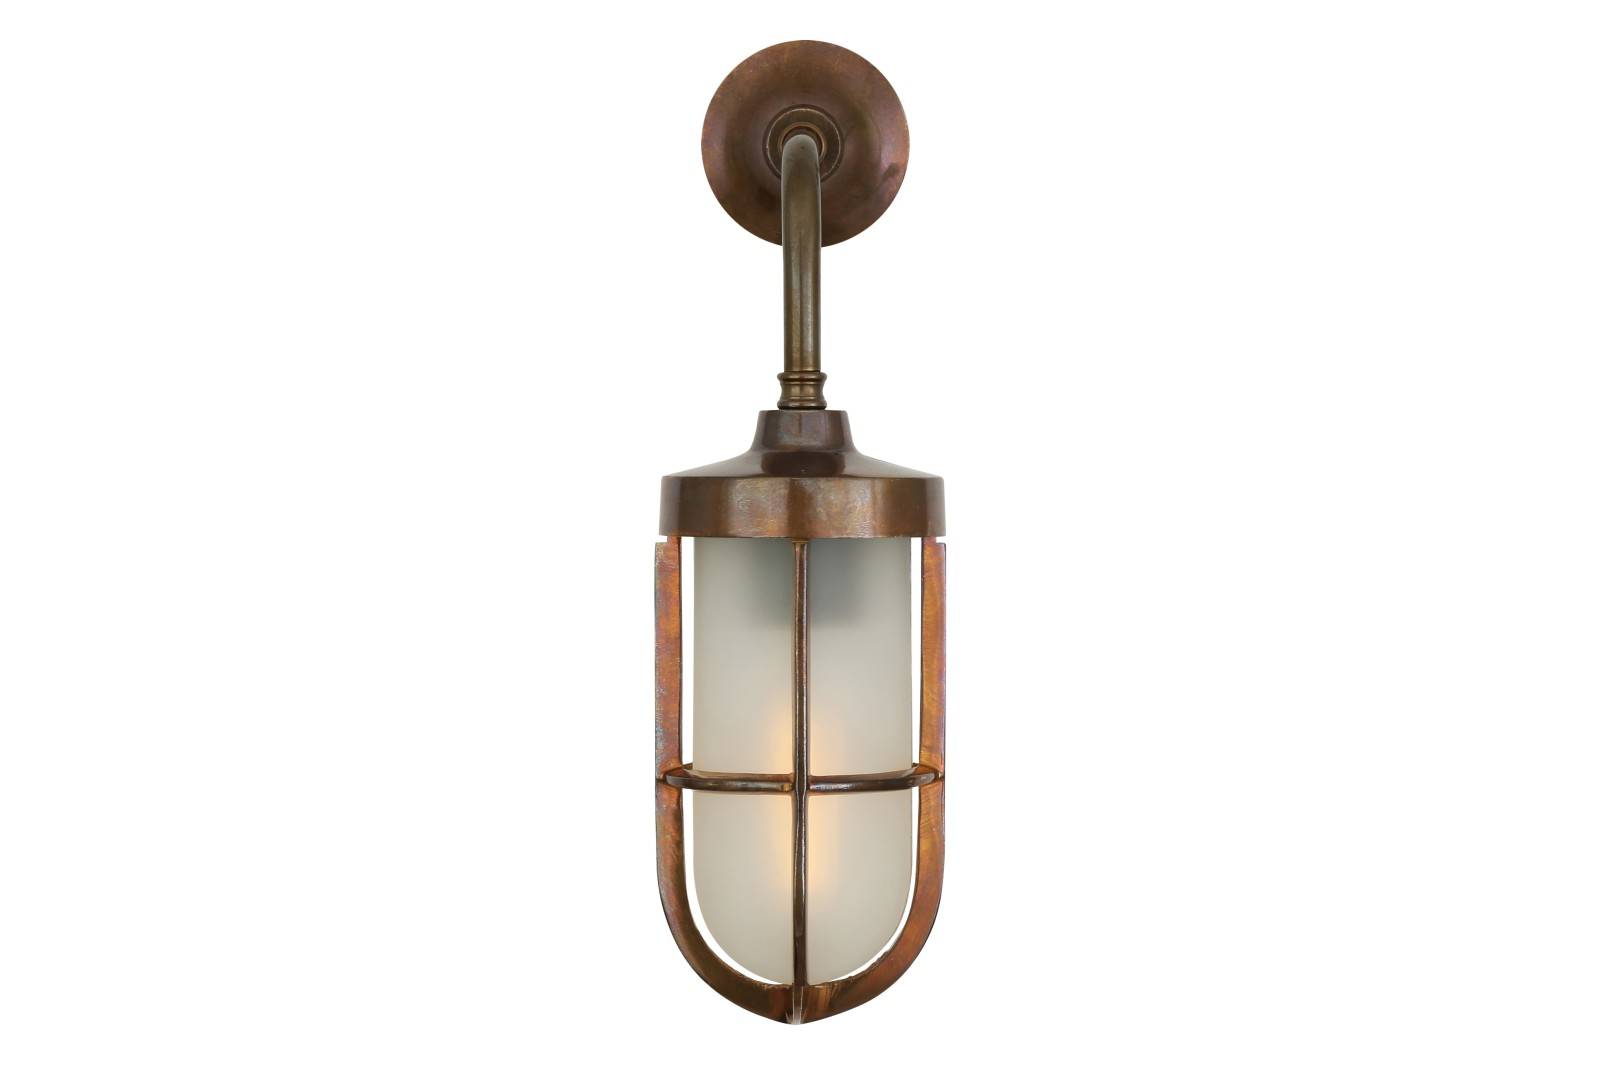 Carac Well Glass Wall Light Antique Brass, Frosted Glass